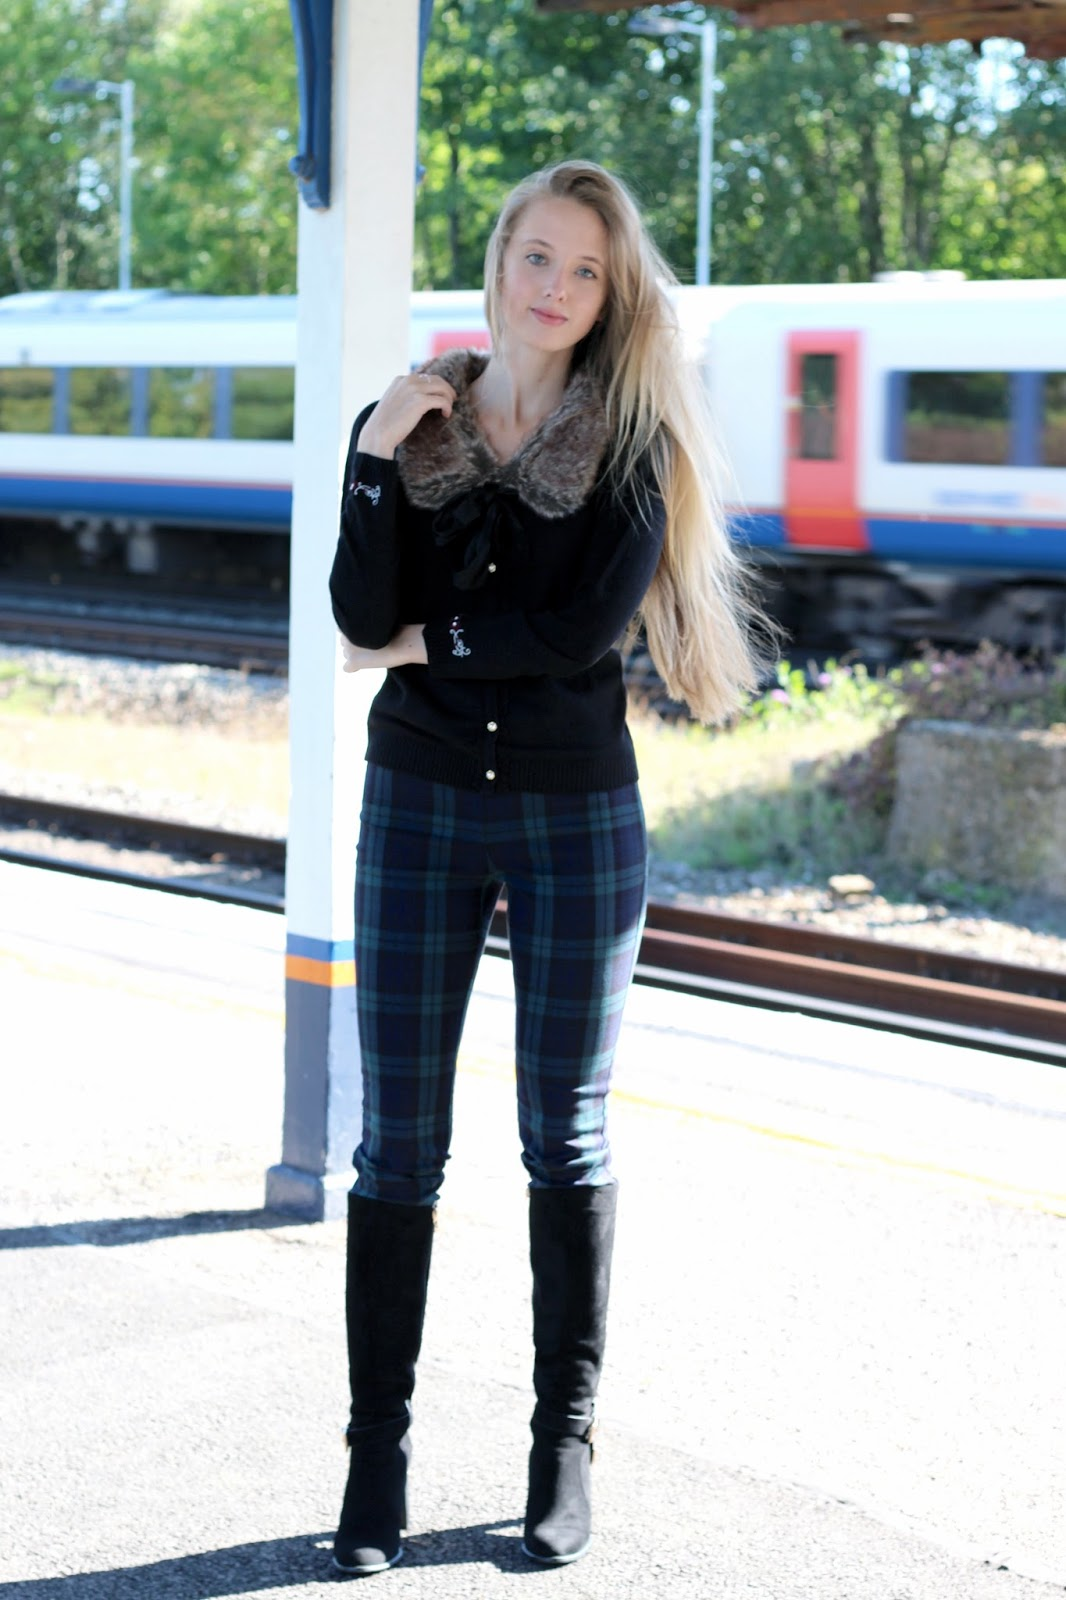 Fashion blogger styling fur collared cardigan